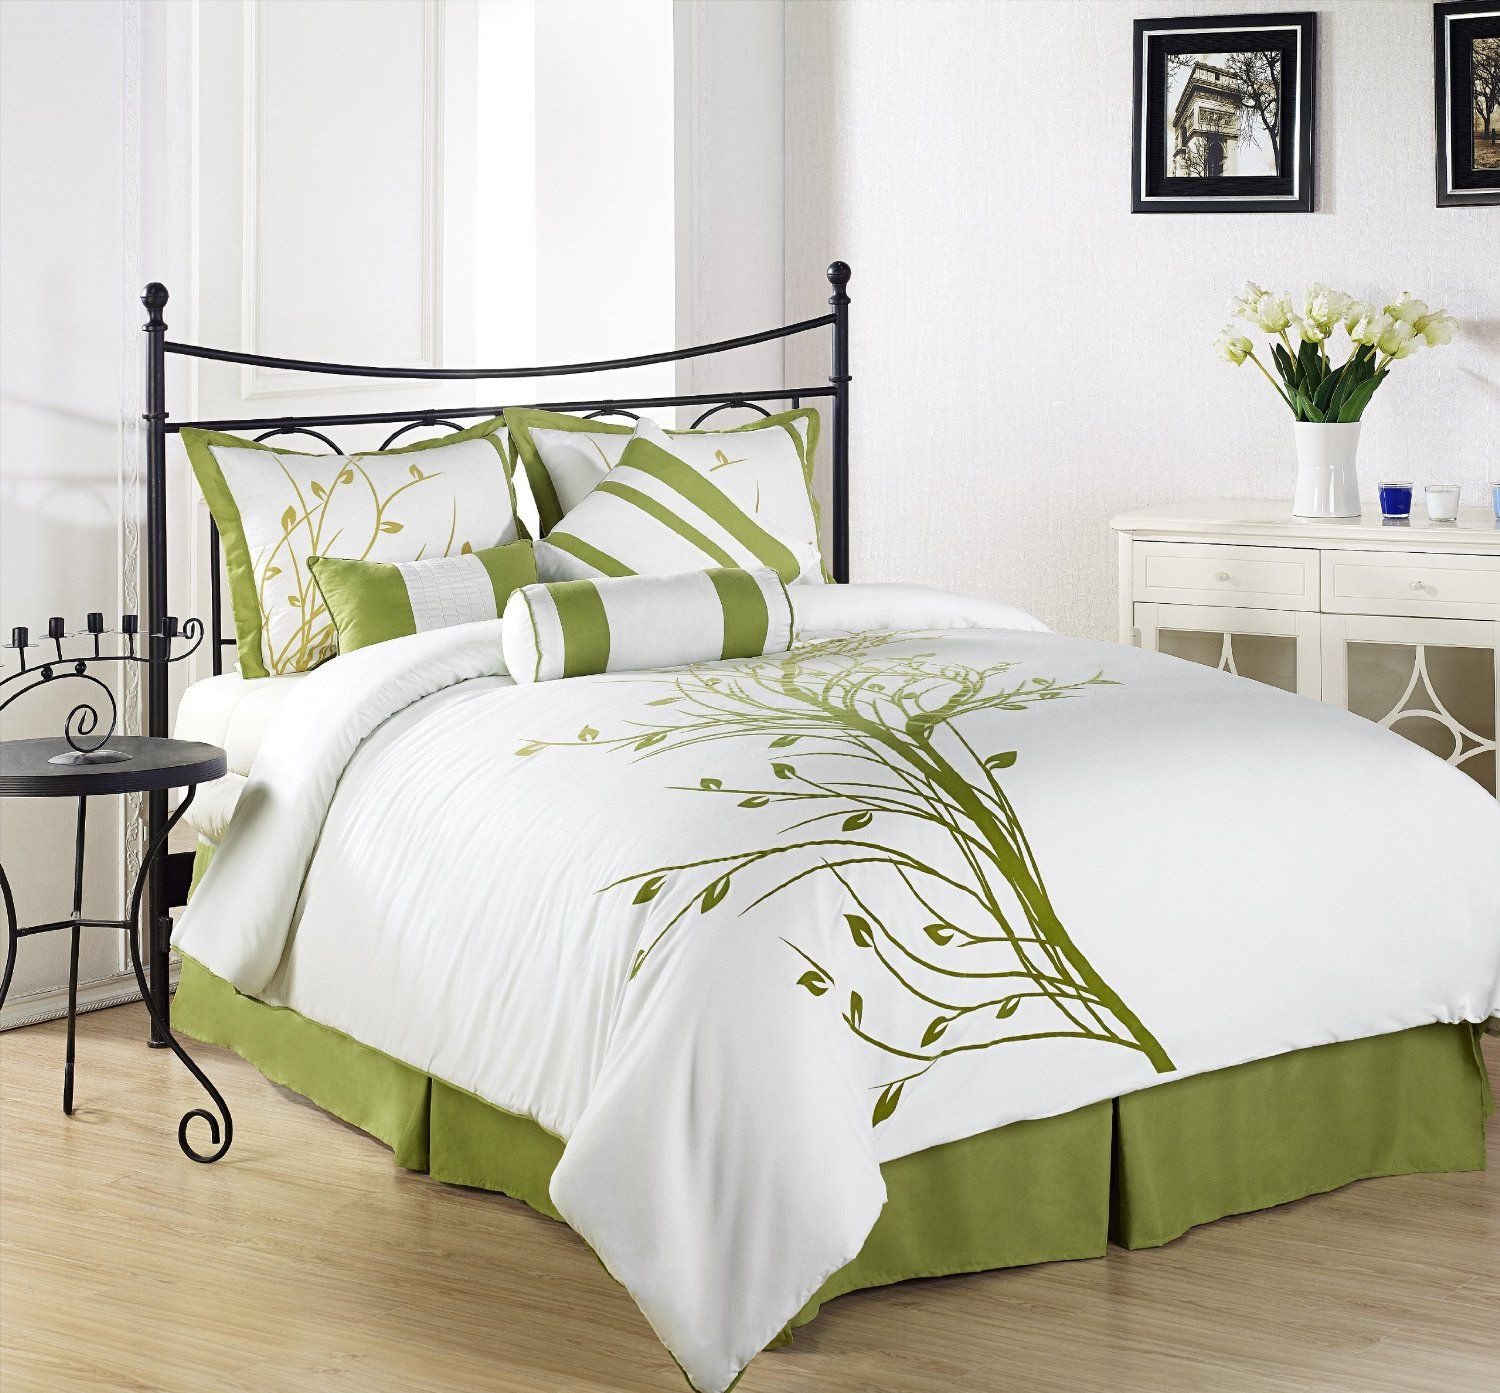 Bed sheets designs white - Chezmoi Collection 7 Pieces Green Tree On White Queen Comforter Set